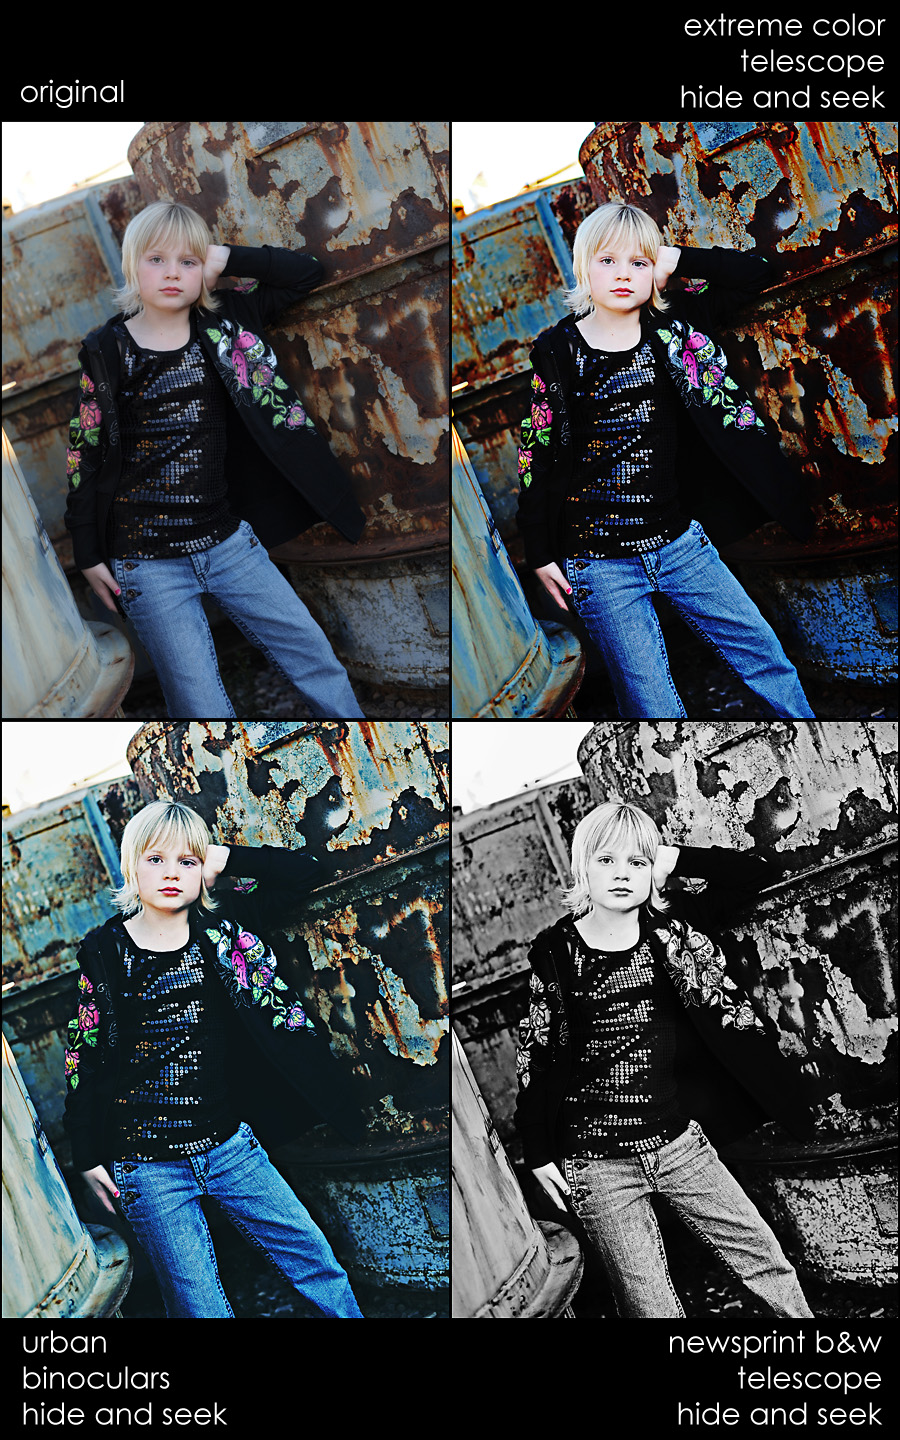 sandi-bradshaw2 MCP All in the Details Photoshop Action Set - NOW AVAILABLE Announcements Photography & Photoshop News Photoshop Actions